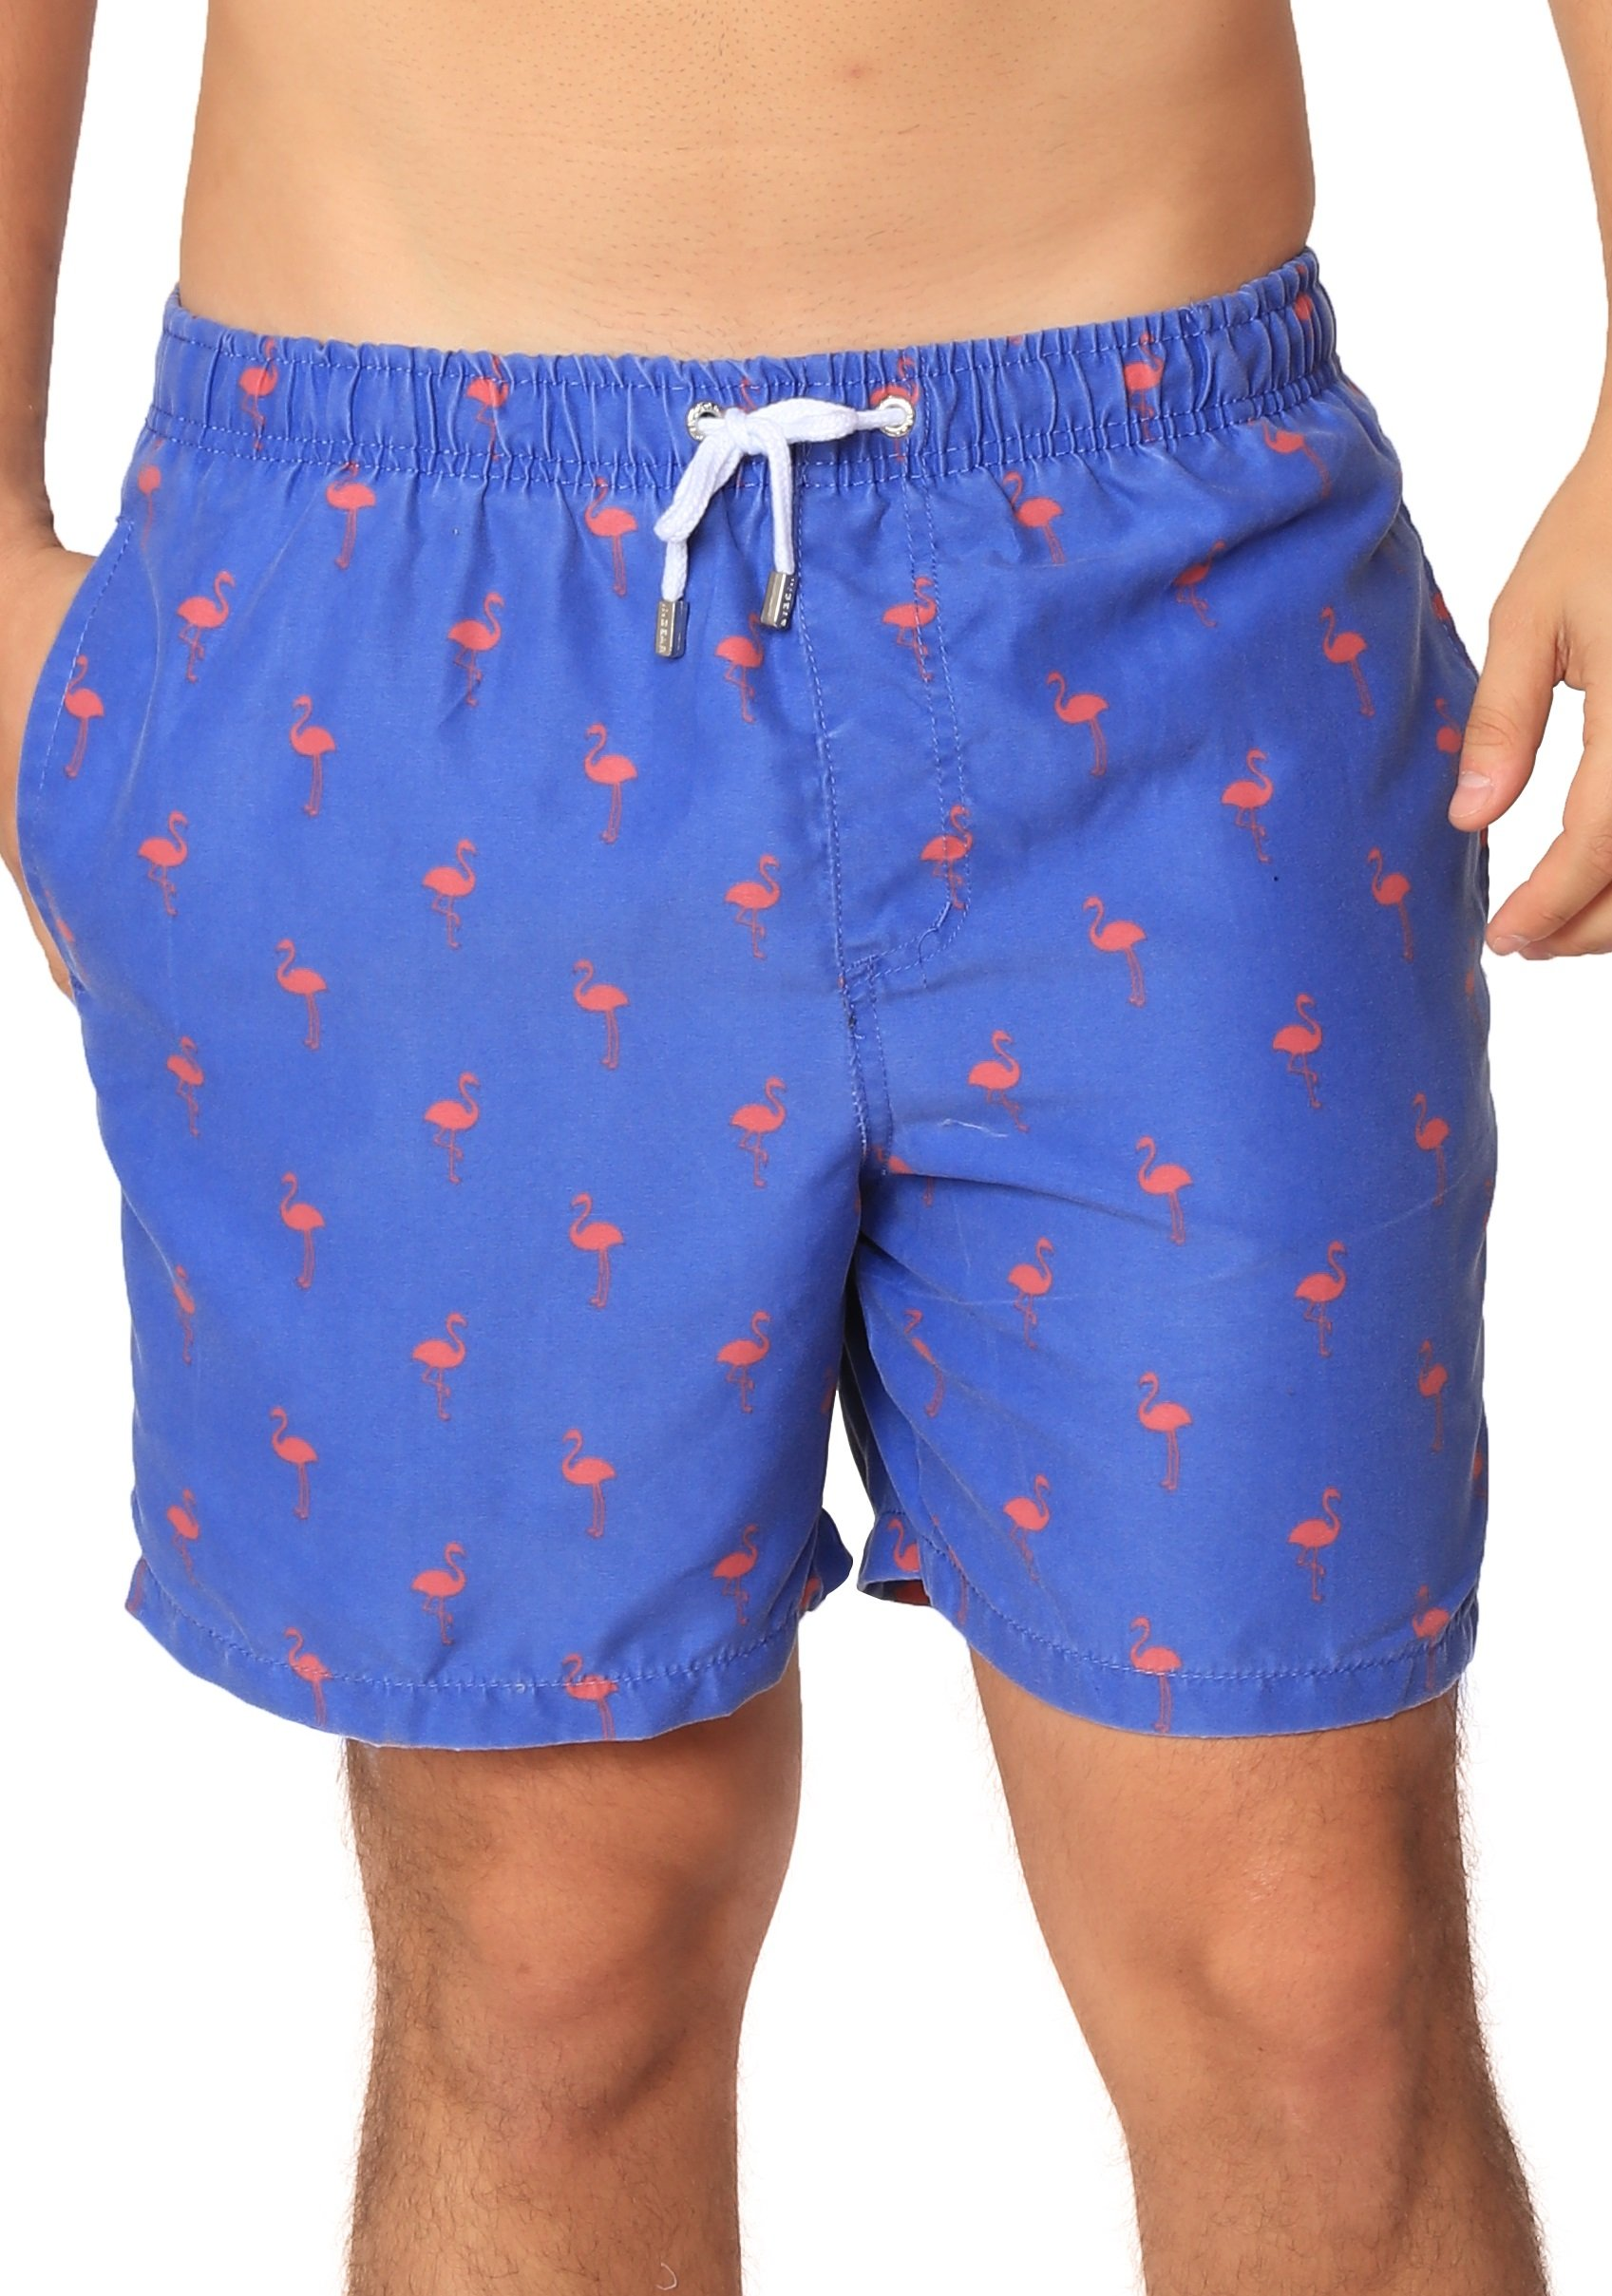 INGEAR Boardshort Swim Trunks Beachwear Summer Surf Printed Casual Water Short (XLarge, Blue Flamingo)